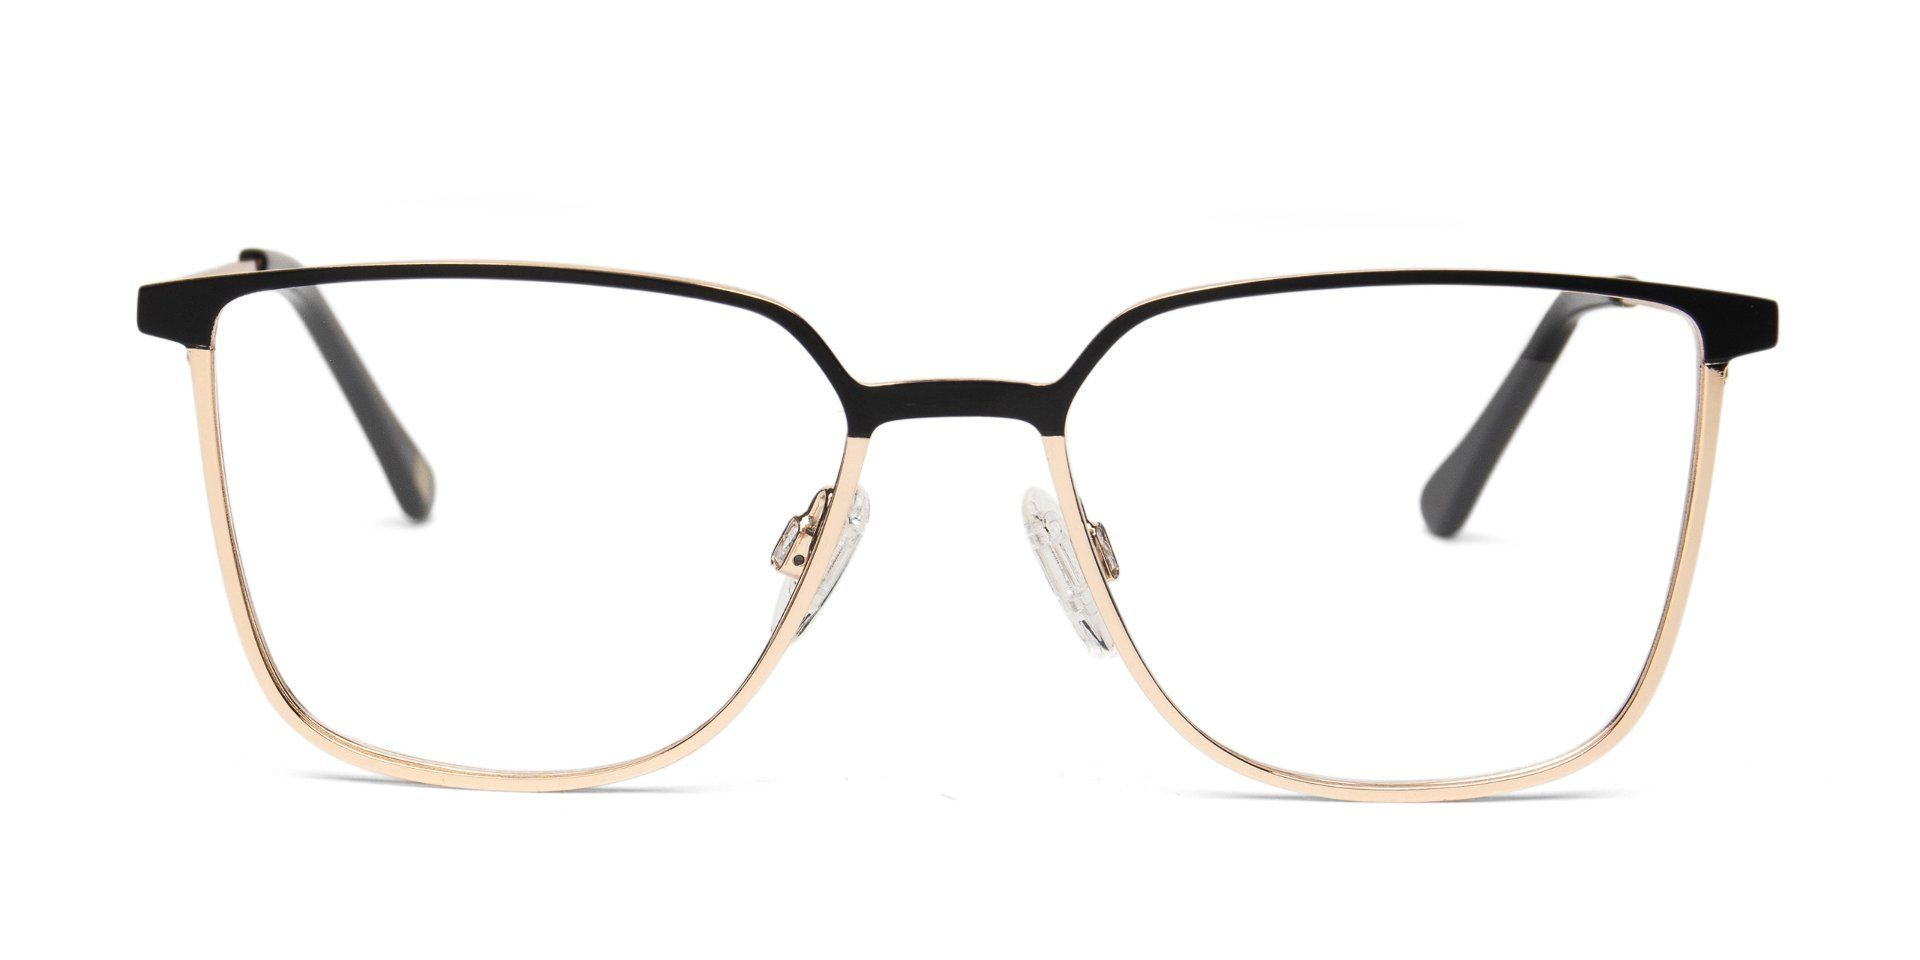 FRAME Matt Black Gold